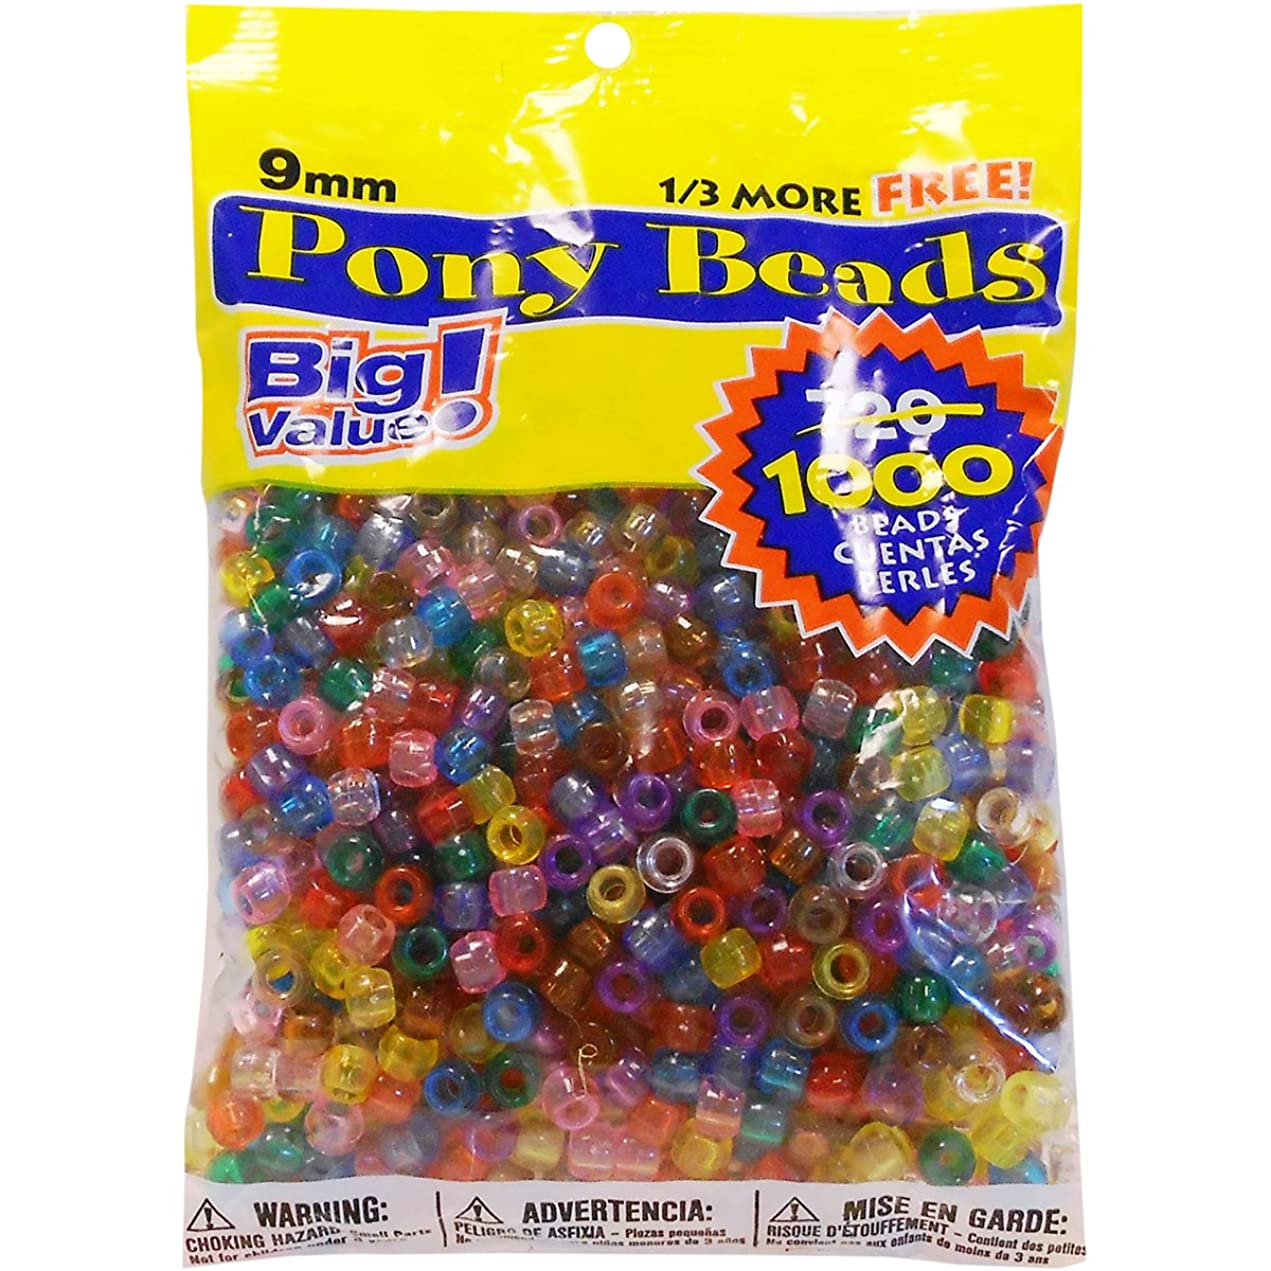 3-Pack - Darice Value Pack Pony Bead, 9mm, Transparent Multicolor, 1000 Beads per Pack